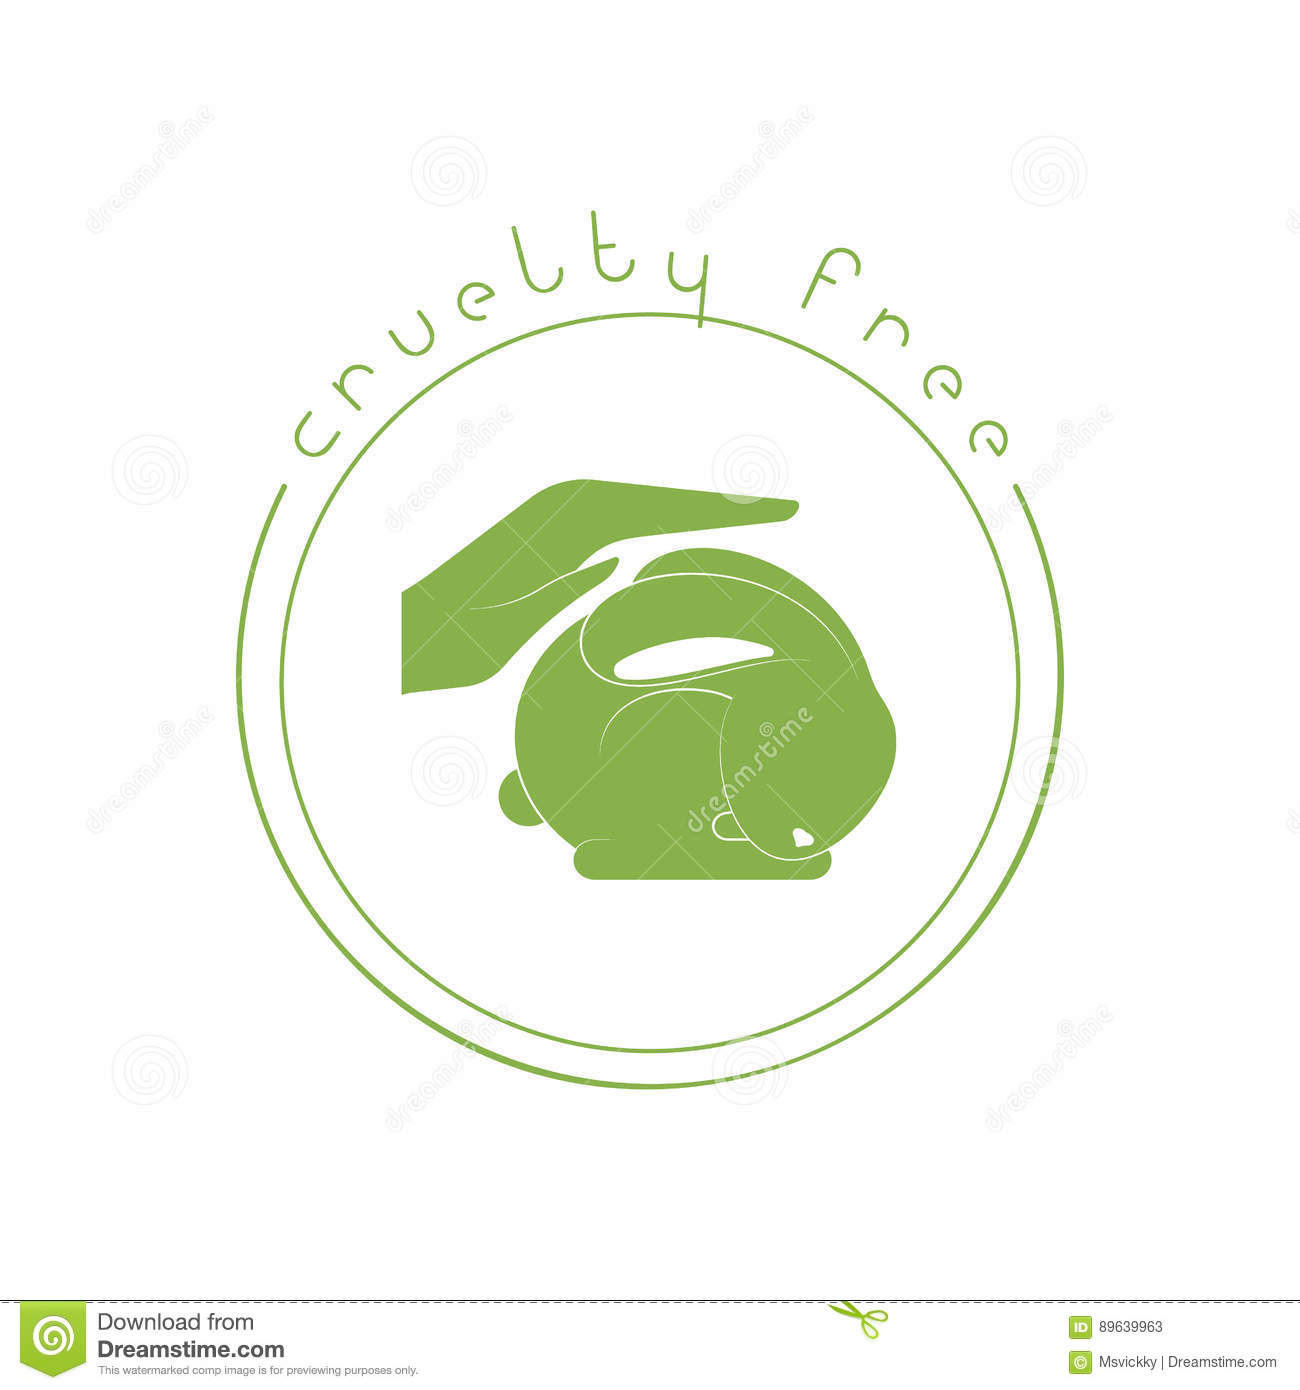 Animal Cruelty Free Concept Stock Vector Illustration Of Animal